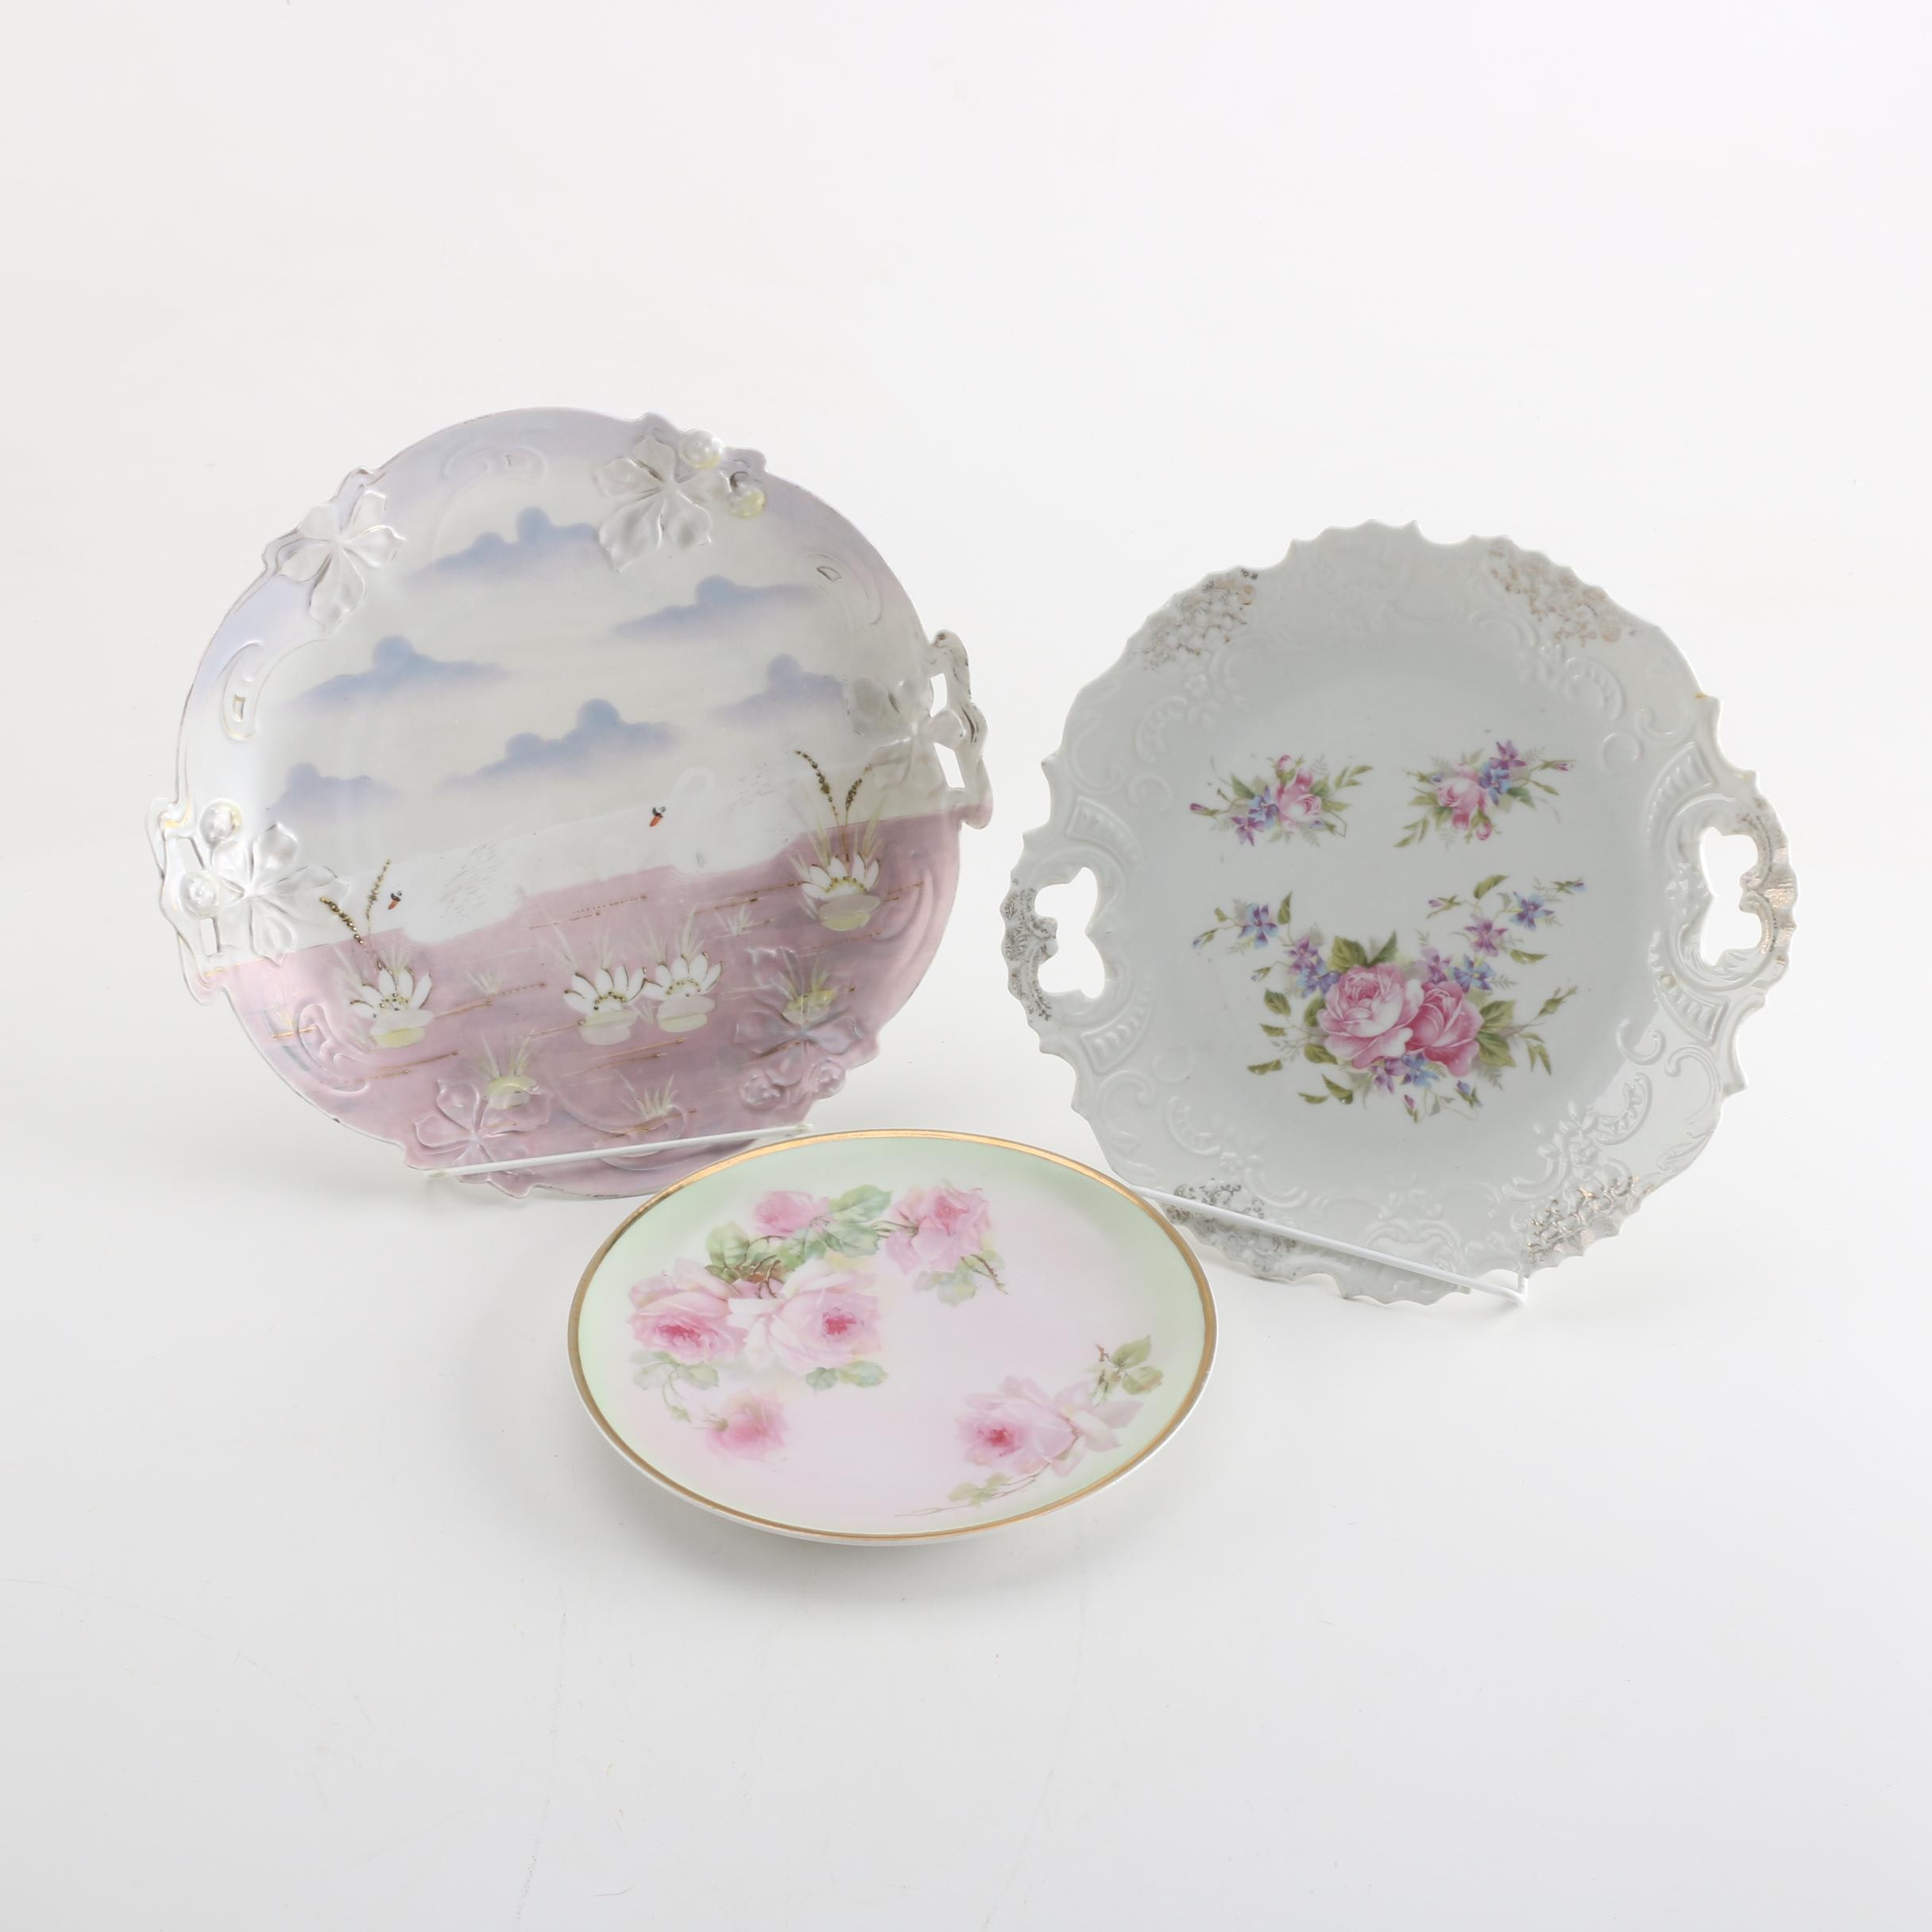 Vintage Porcelain Plates Including C. Tielsch & Co.